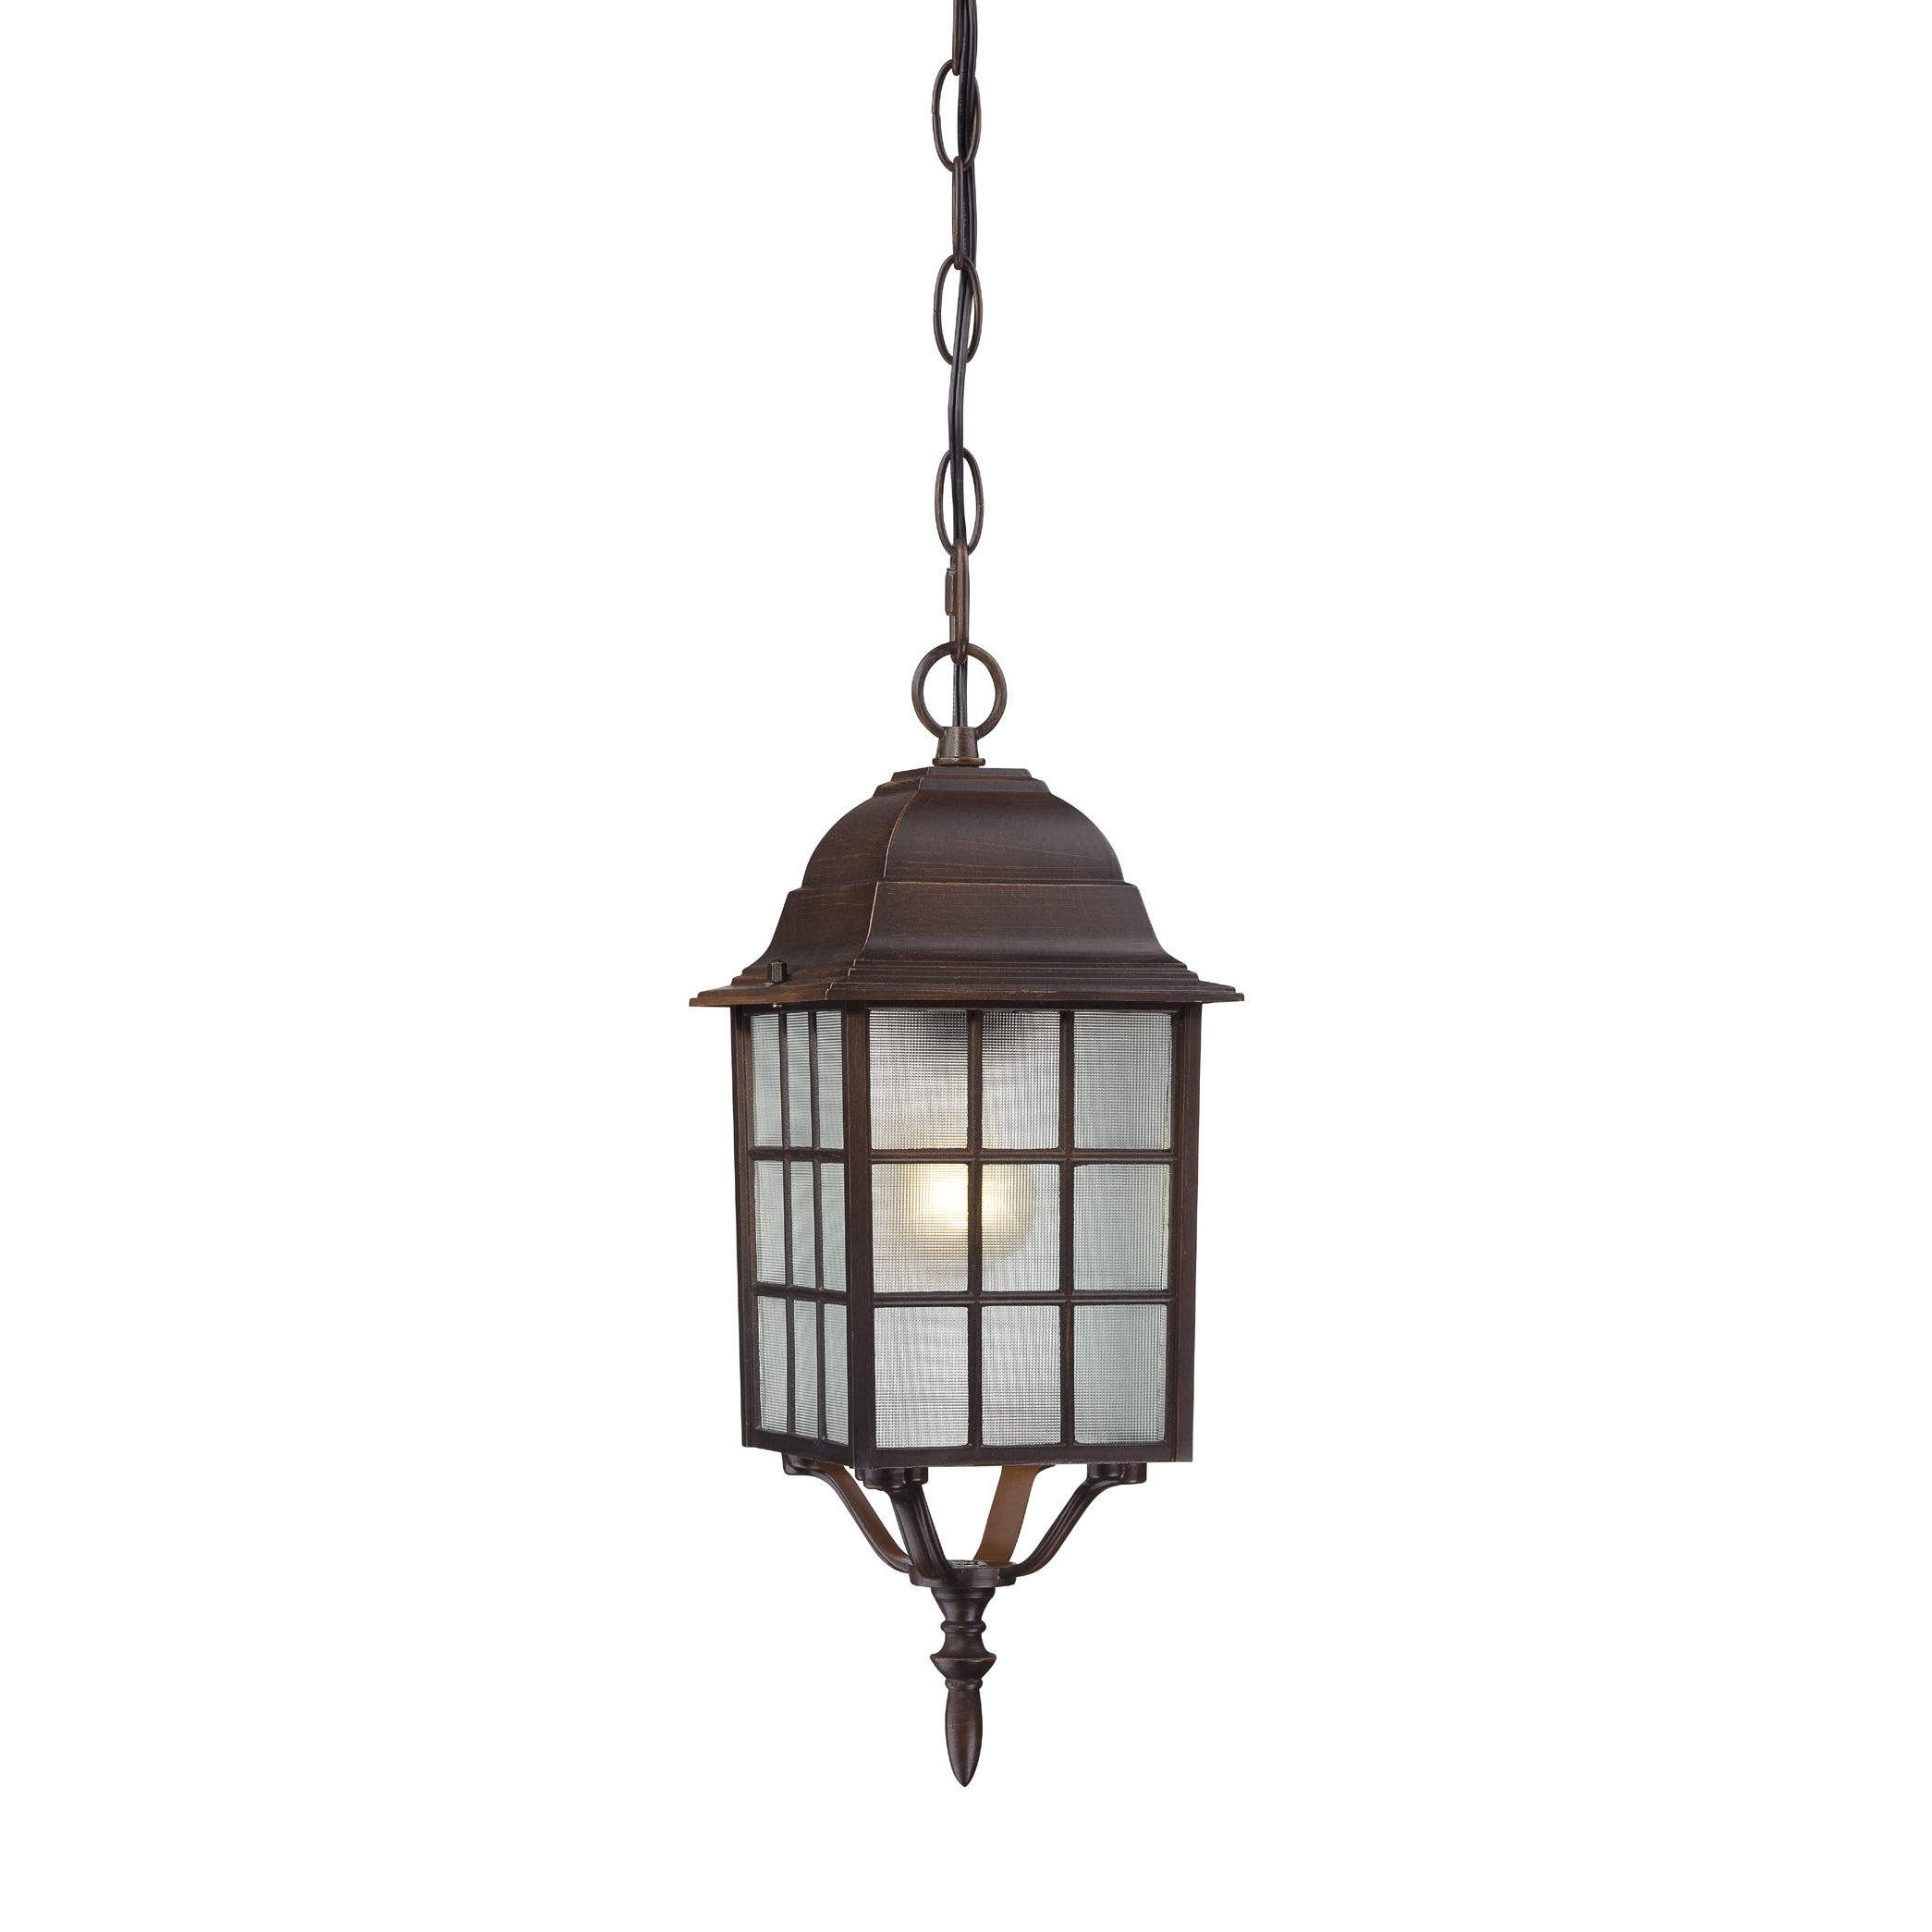 Newest Rustic Outdoor Hanging Lights With Lighting : Lighting Incredible Rustic Outdoor Pendant Images (View 12 of 20)